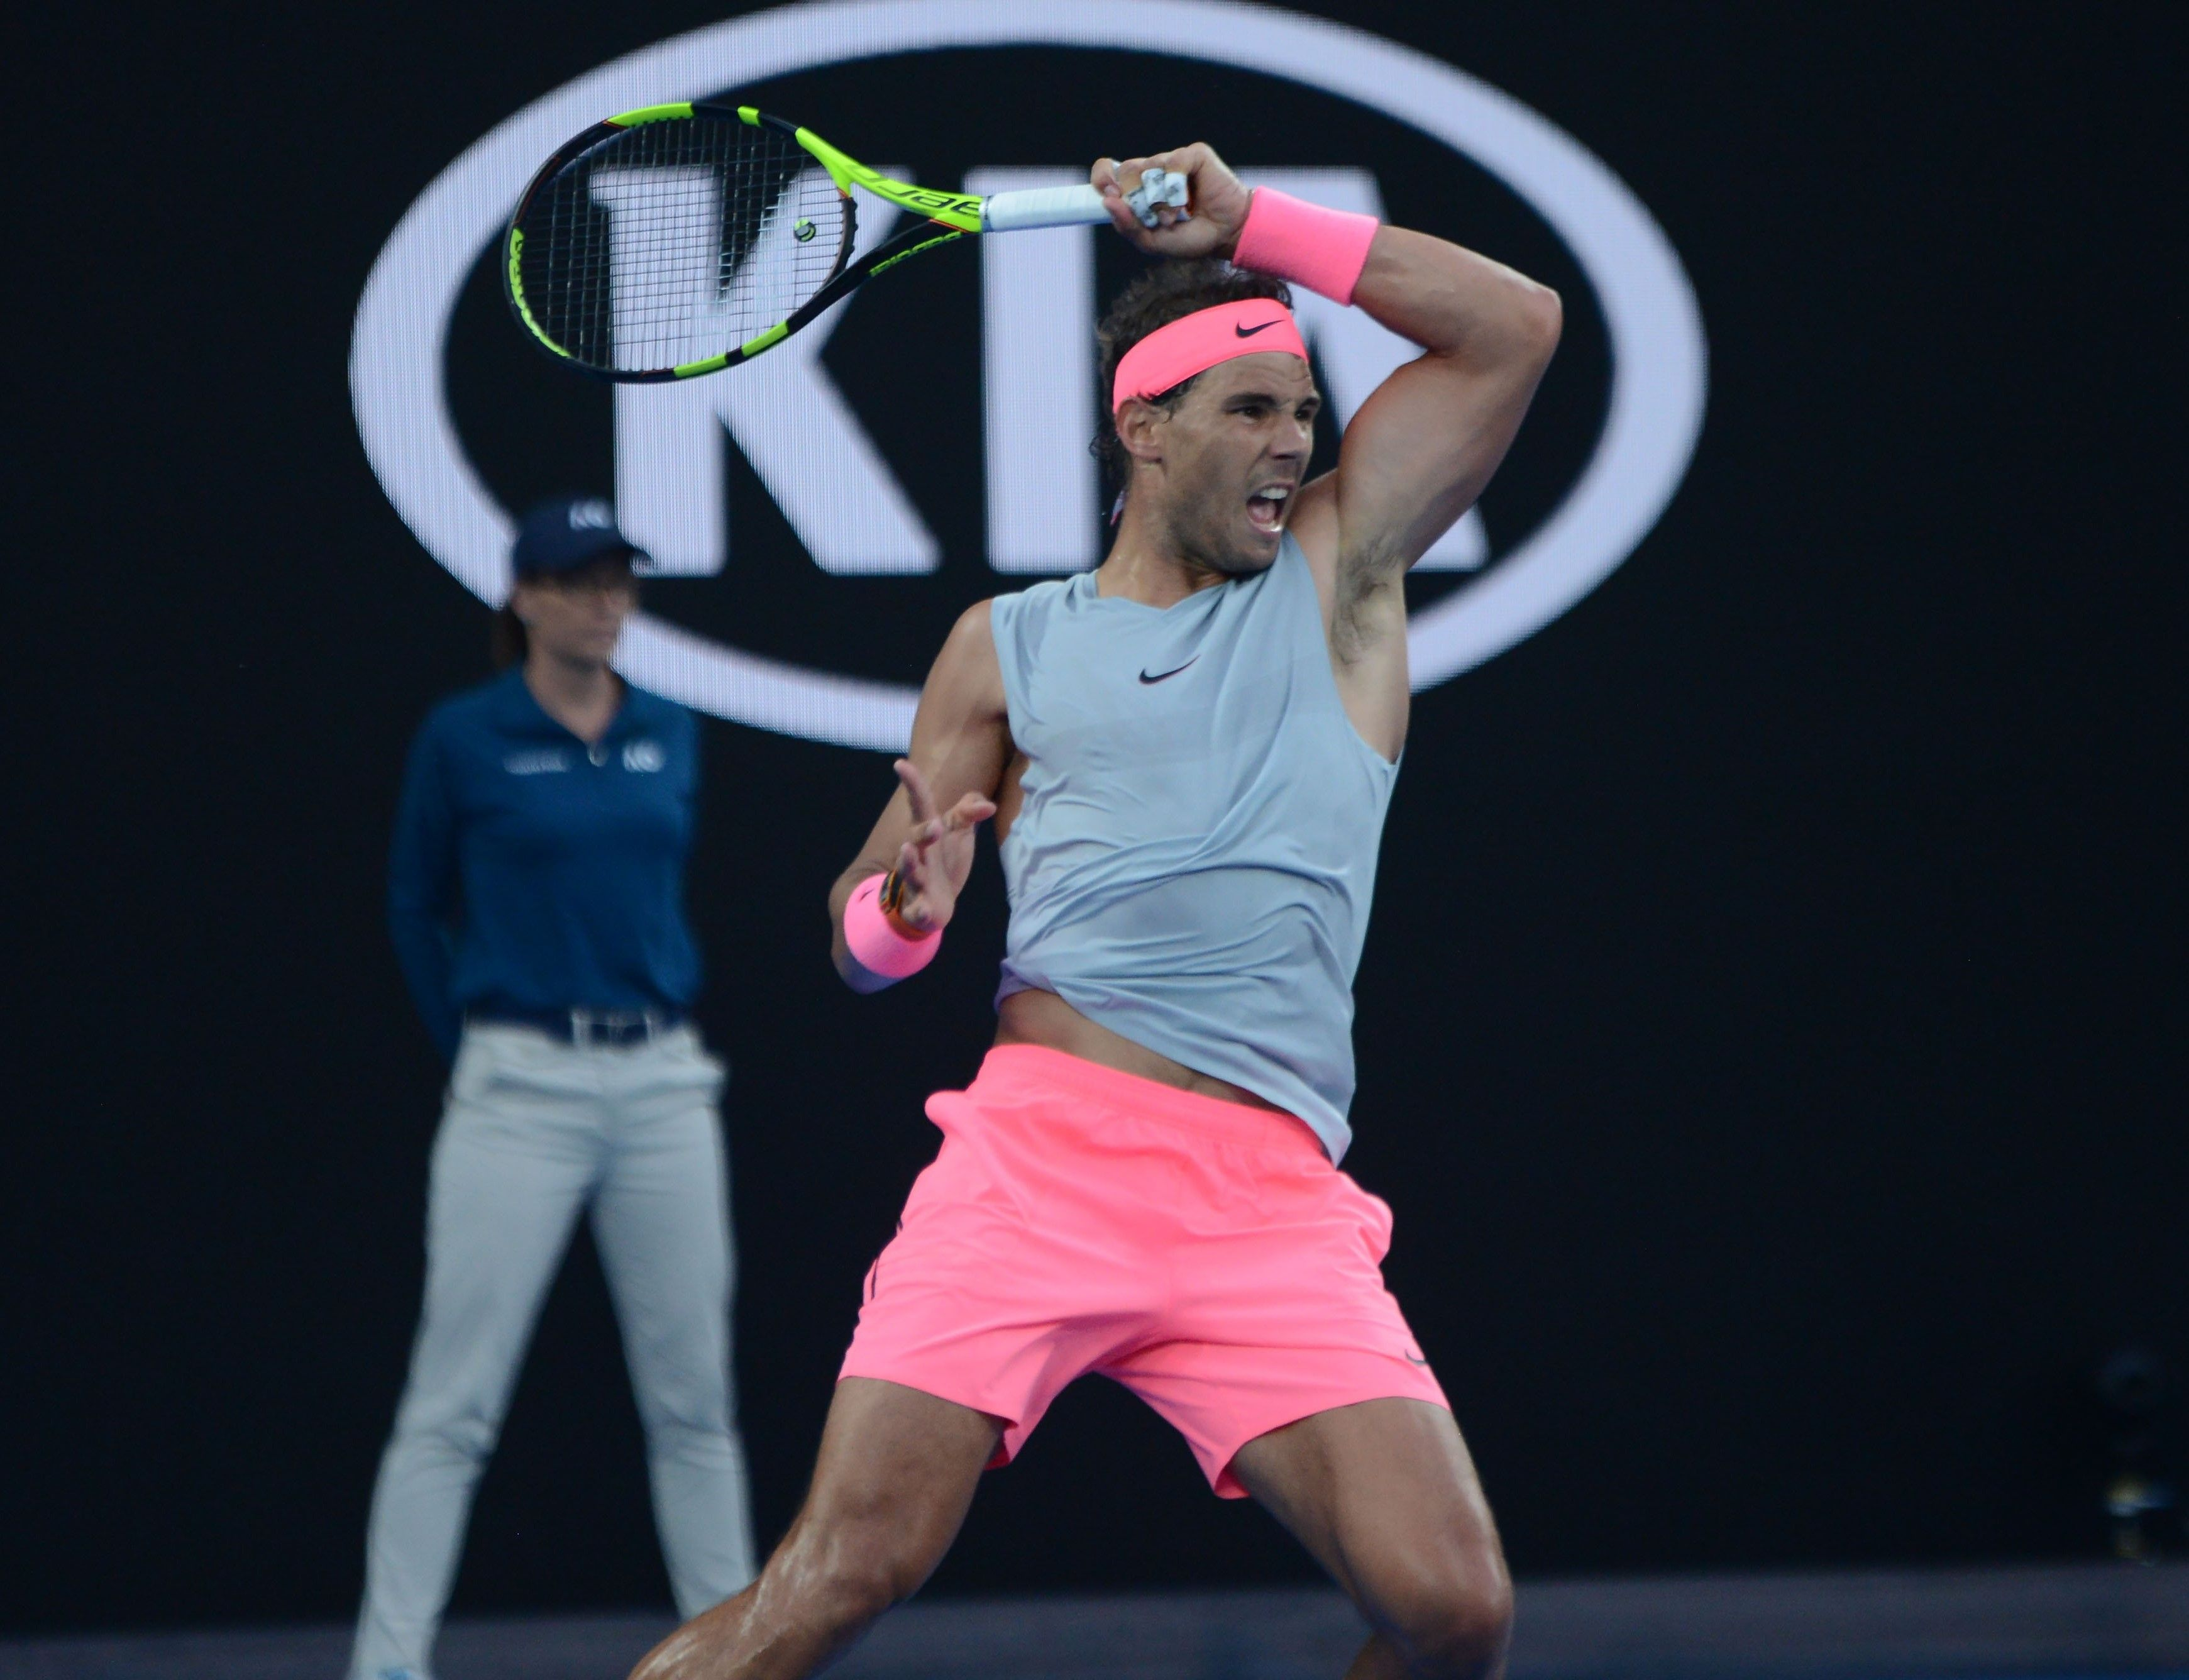 How To Get Arms Like Rafael Nadal